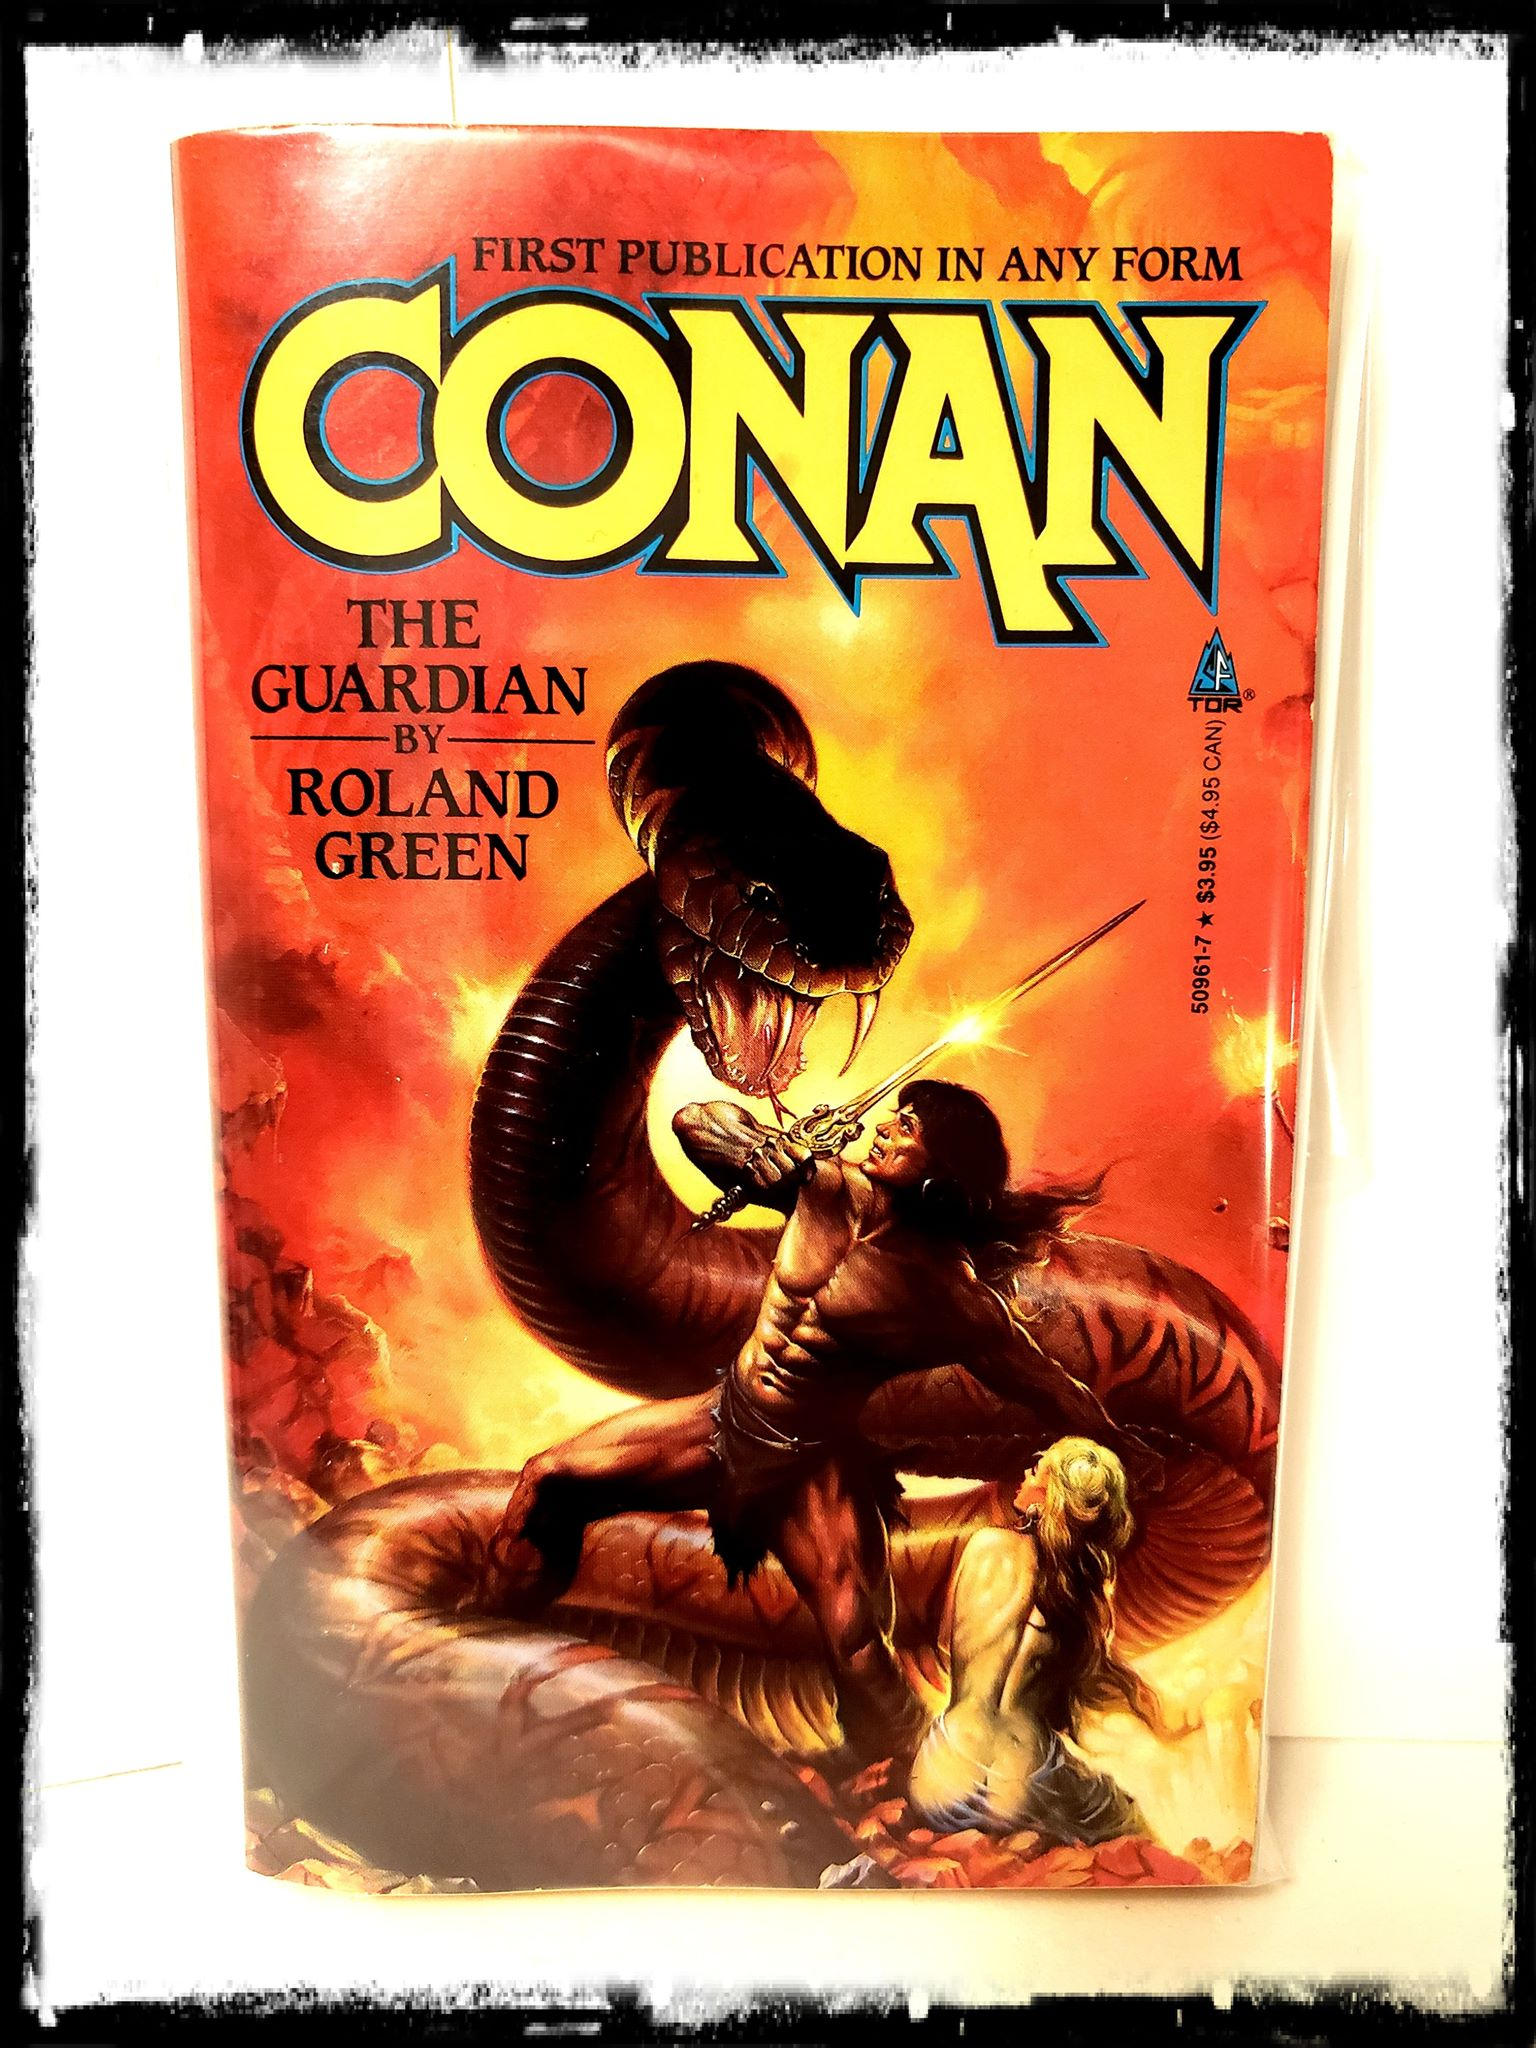 CONAN - THE GUARDIAN (1991 - ROLAND J. GREEN) PAPERBACK